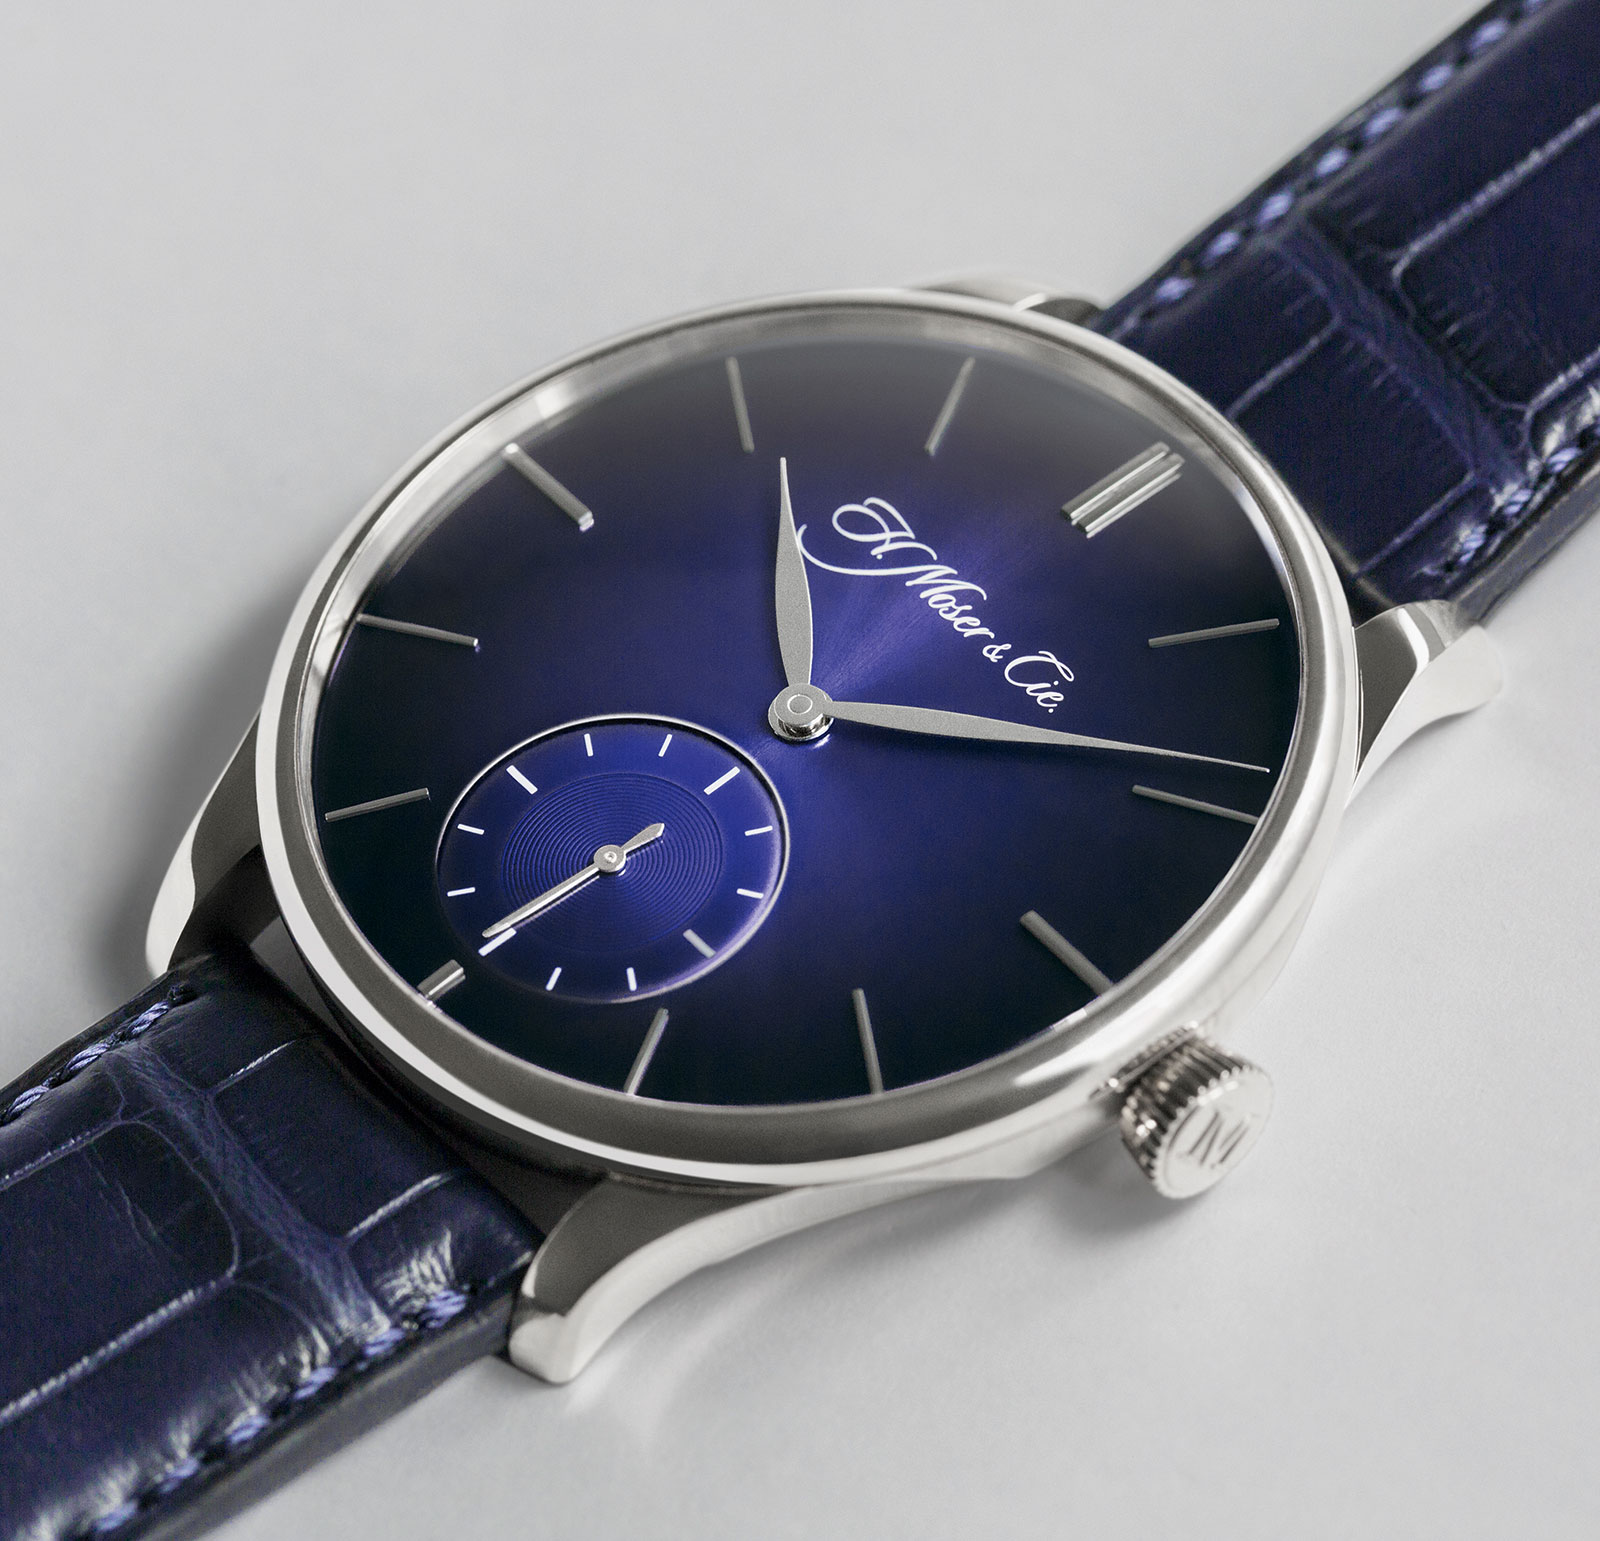 H. Moser & Cie. Introduces the Venturer XL with Patented Magnetism-Resistant Hairspring | SJX Watches